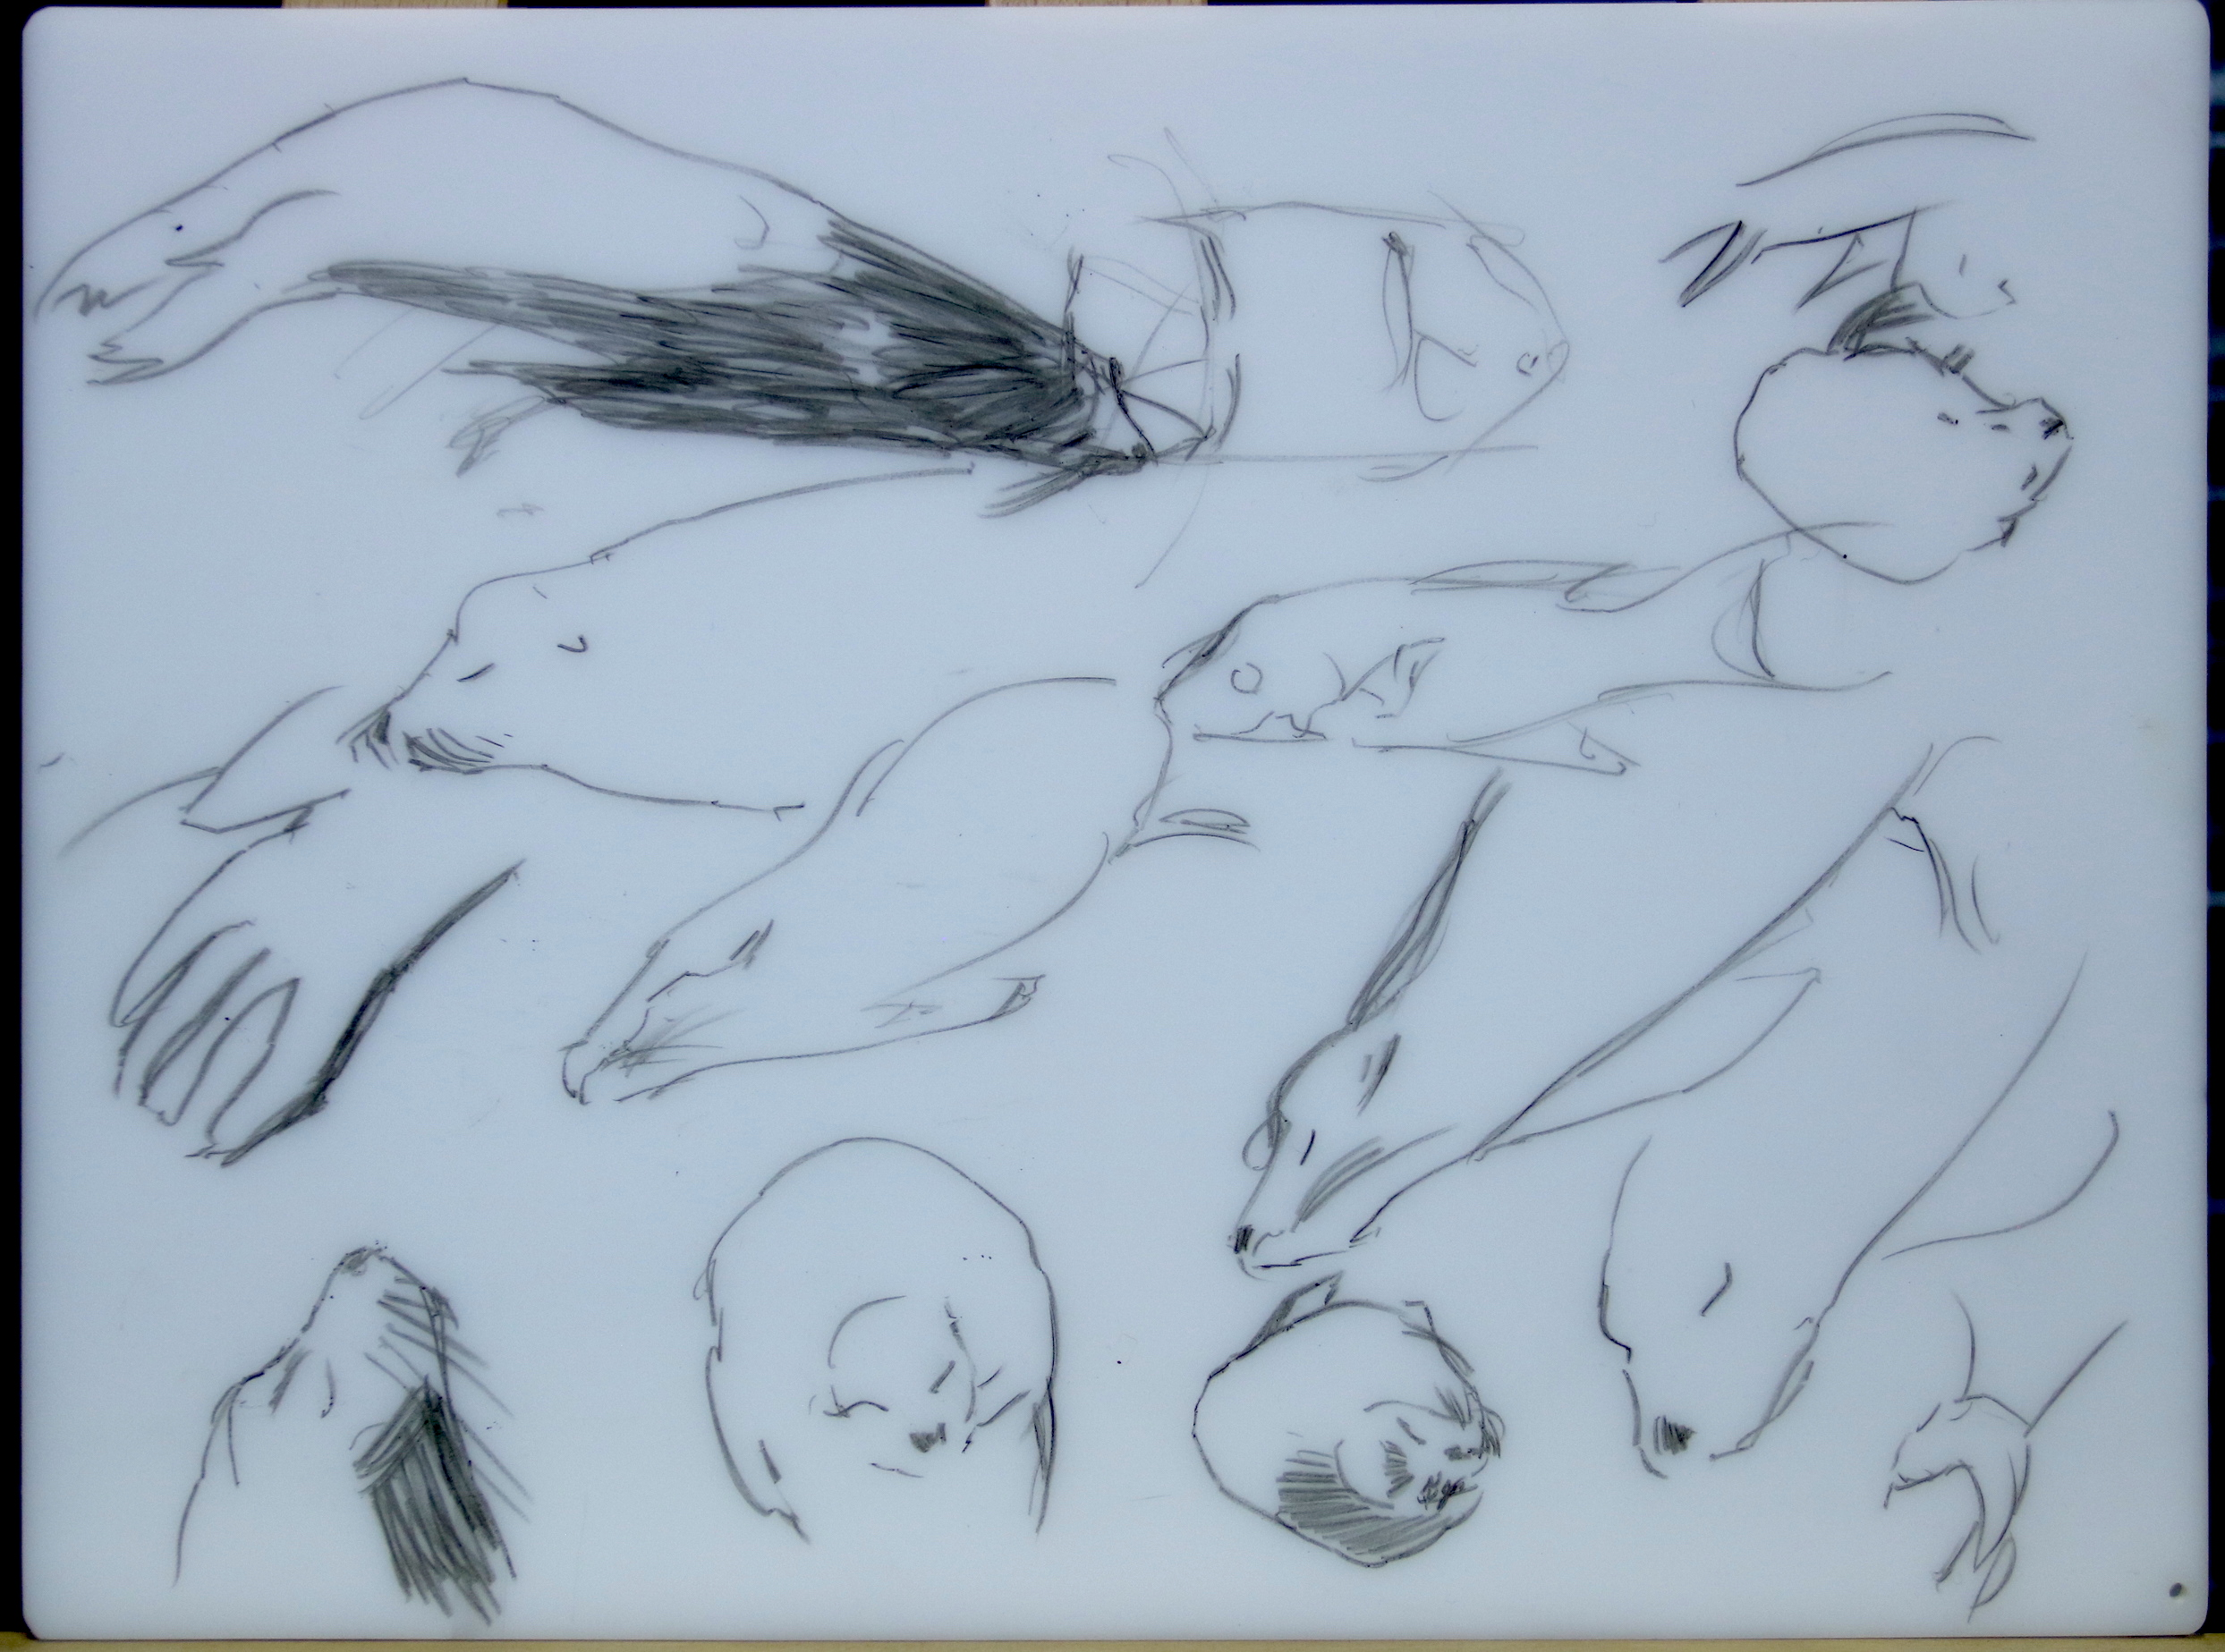 Sketches of napping sea lions.